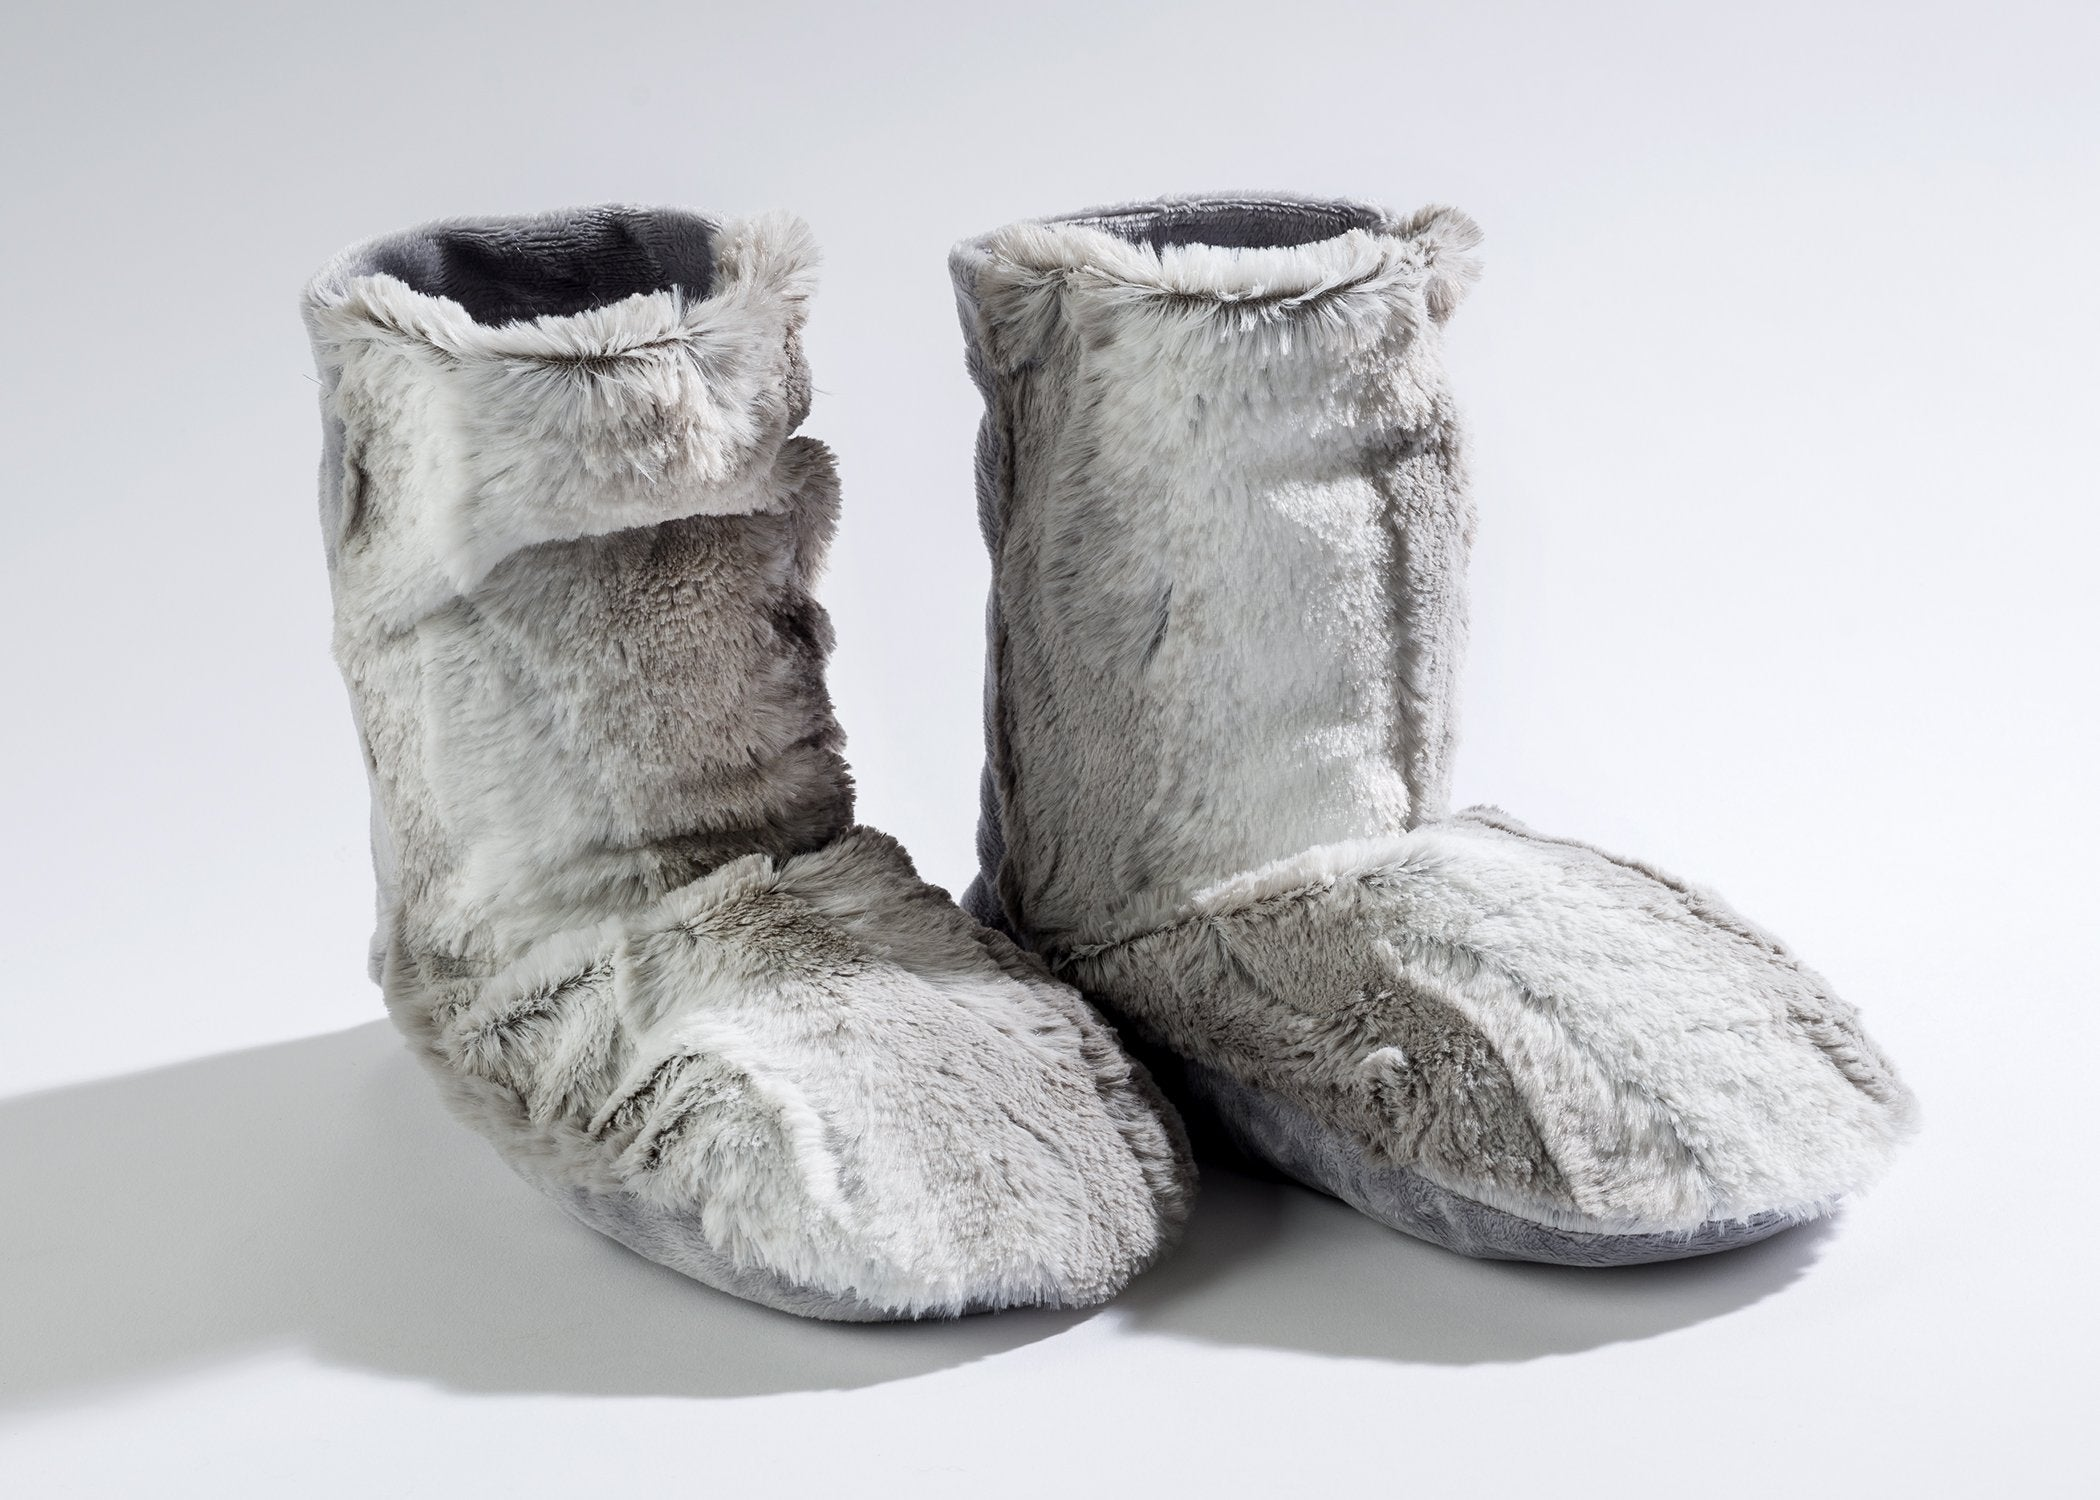 Lavender Spa Booties in Platinum Angora